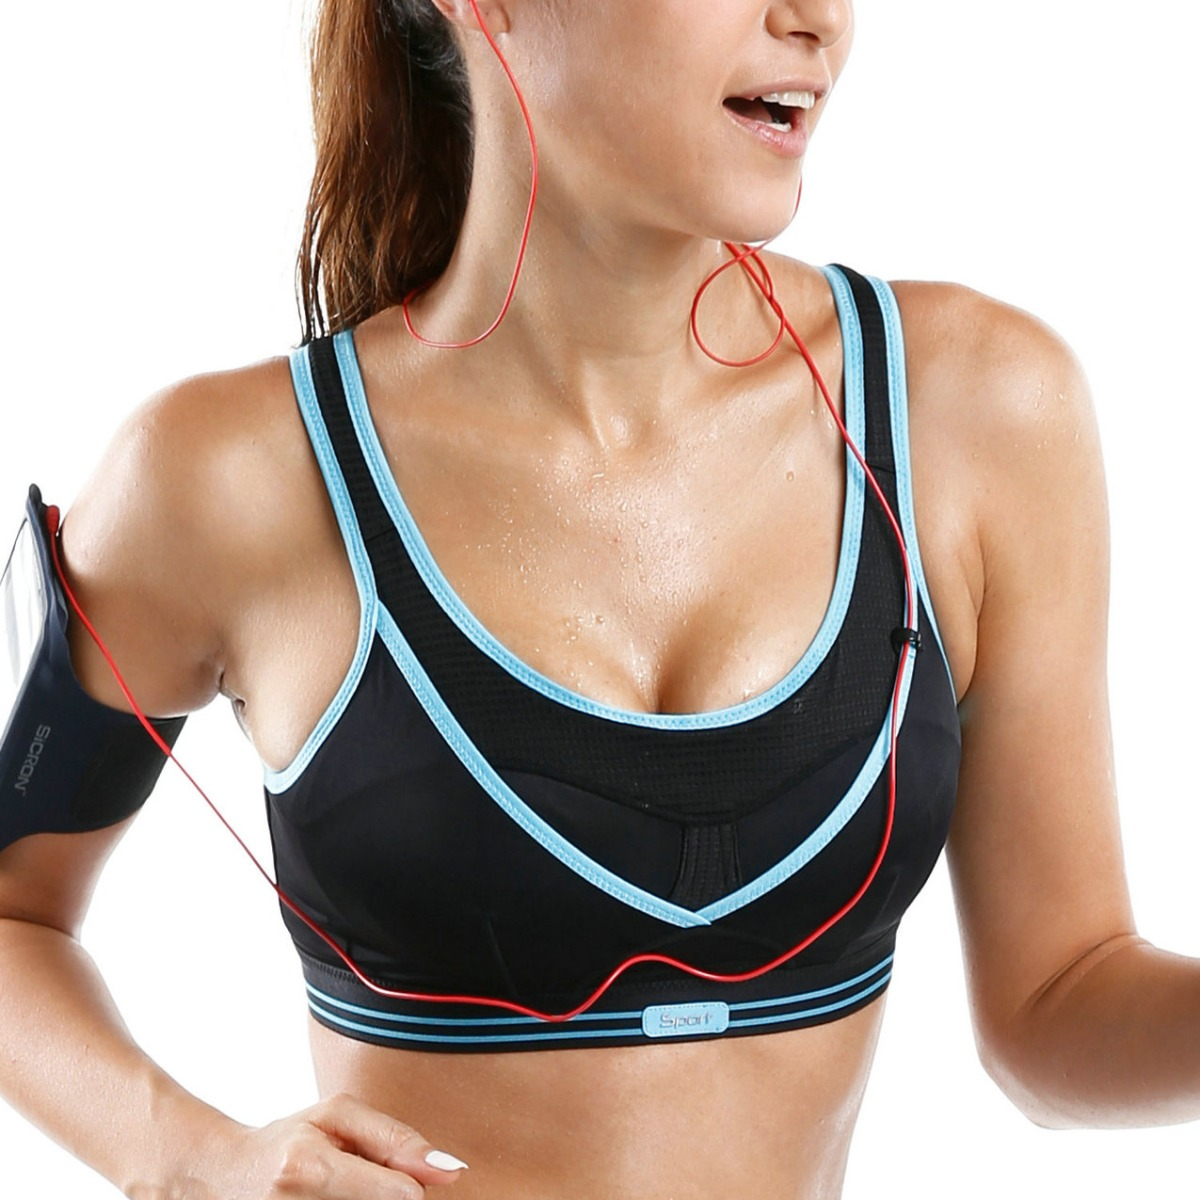 SYROKAN Women's High Impact Wireless Support Cool Racerback